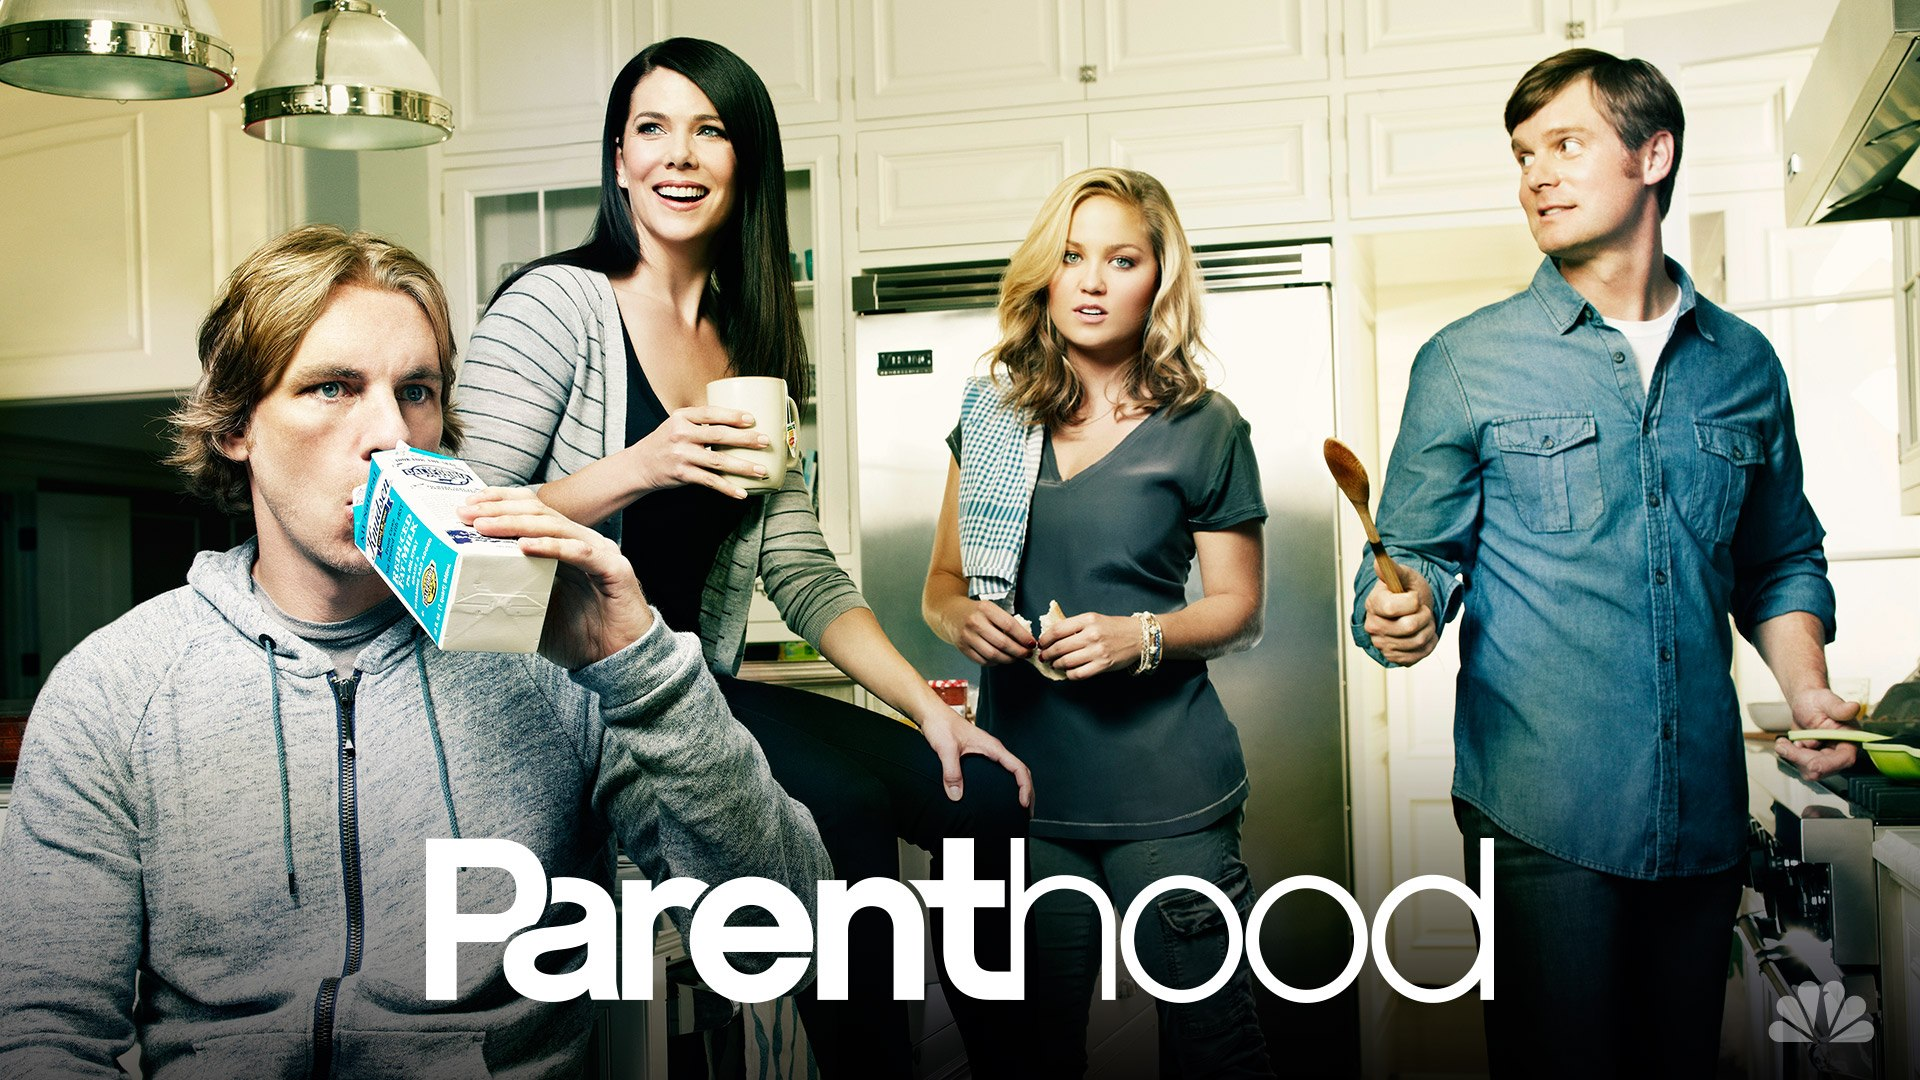 Parenthood is on NBC Thursdays at 9 Central. (Source)